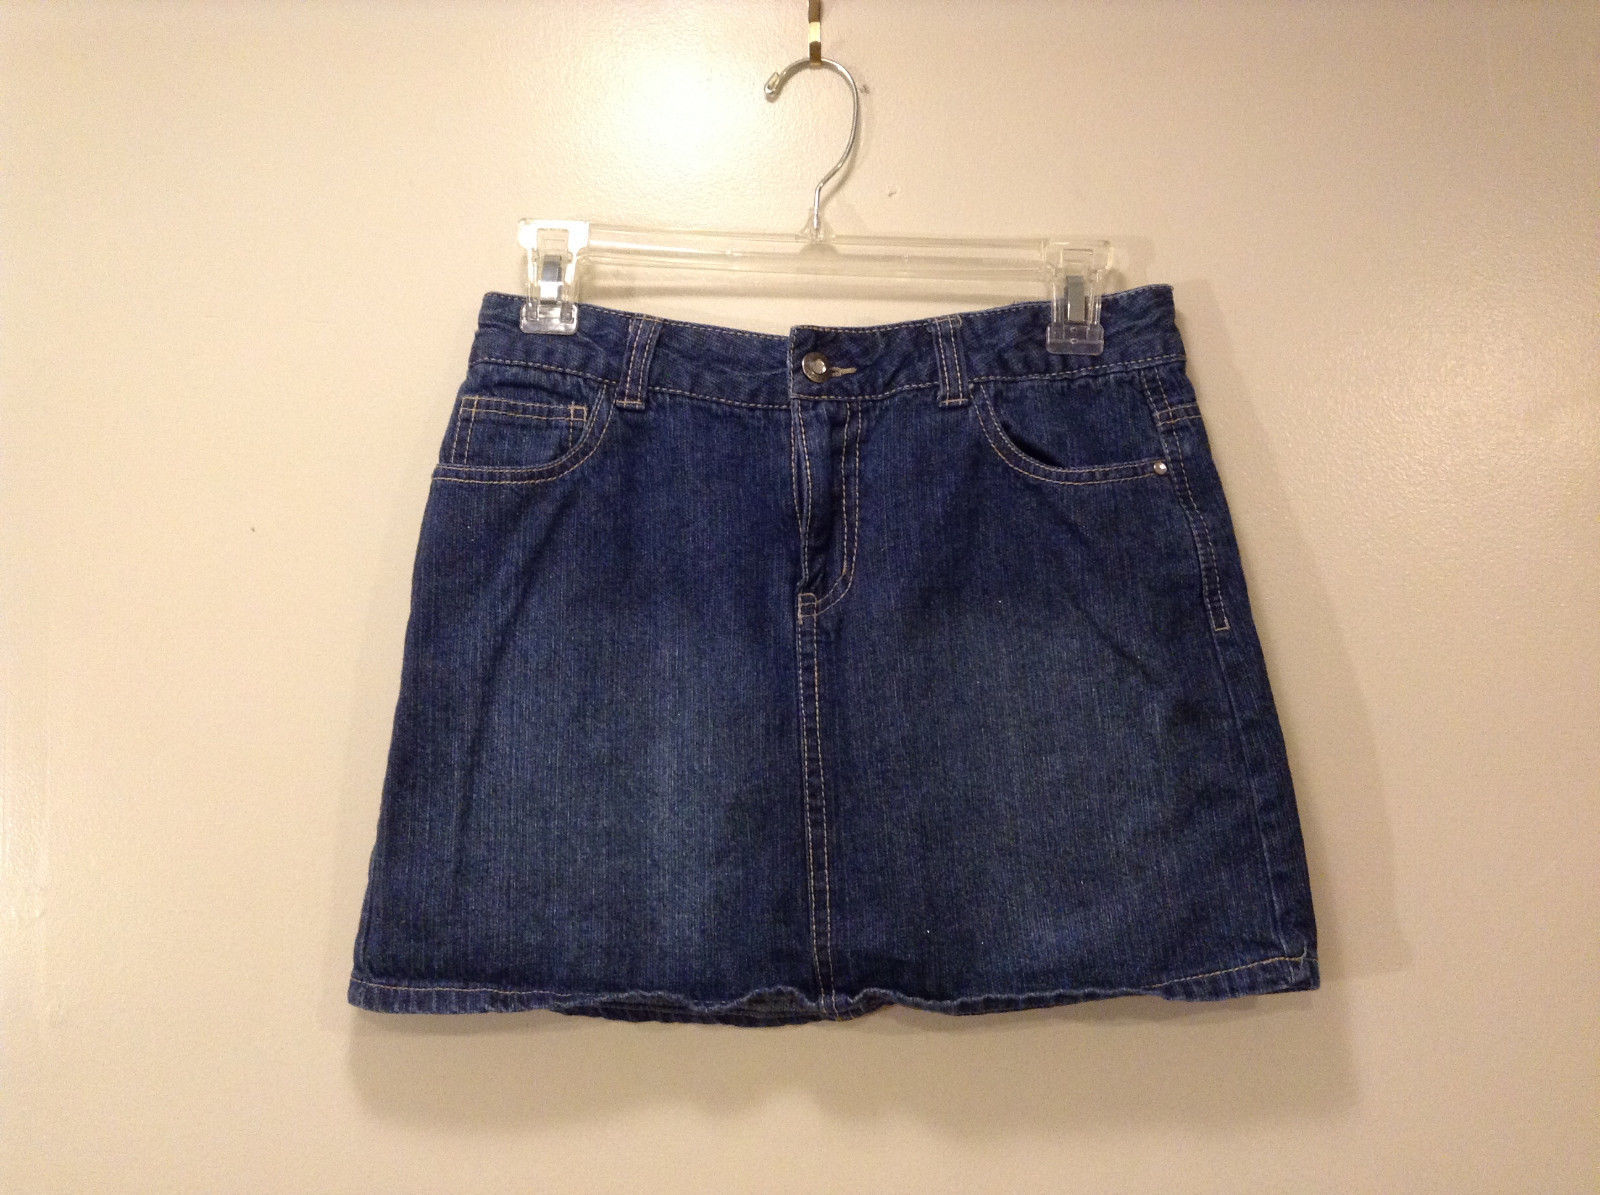 Faded Glory Women's Junior Size 16 Denim Mini Skirt Dark Blue Wash Embroidered